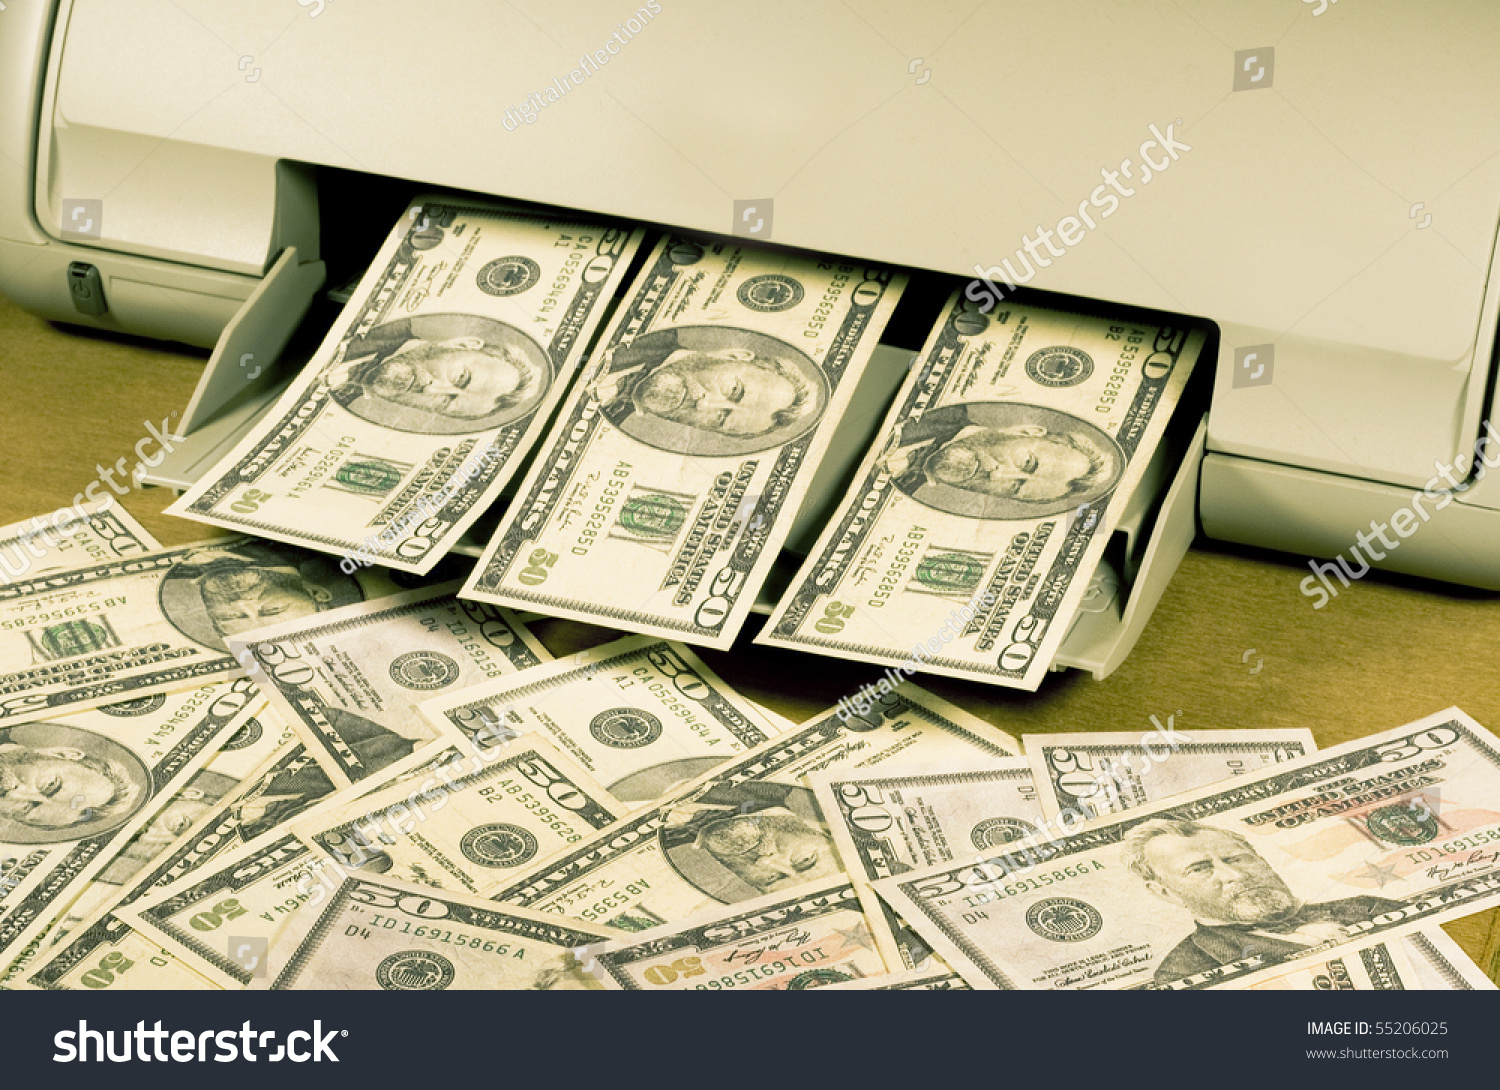 paper for printing counterfeit money Learn about counterfeit bills embedded in the paper nelson was able to create fake money that fooled most of the people most of the time.